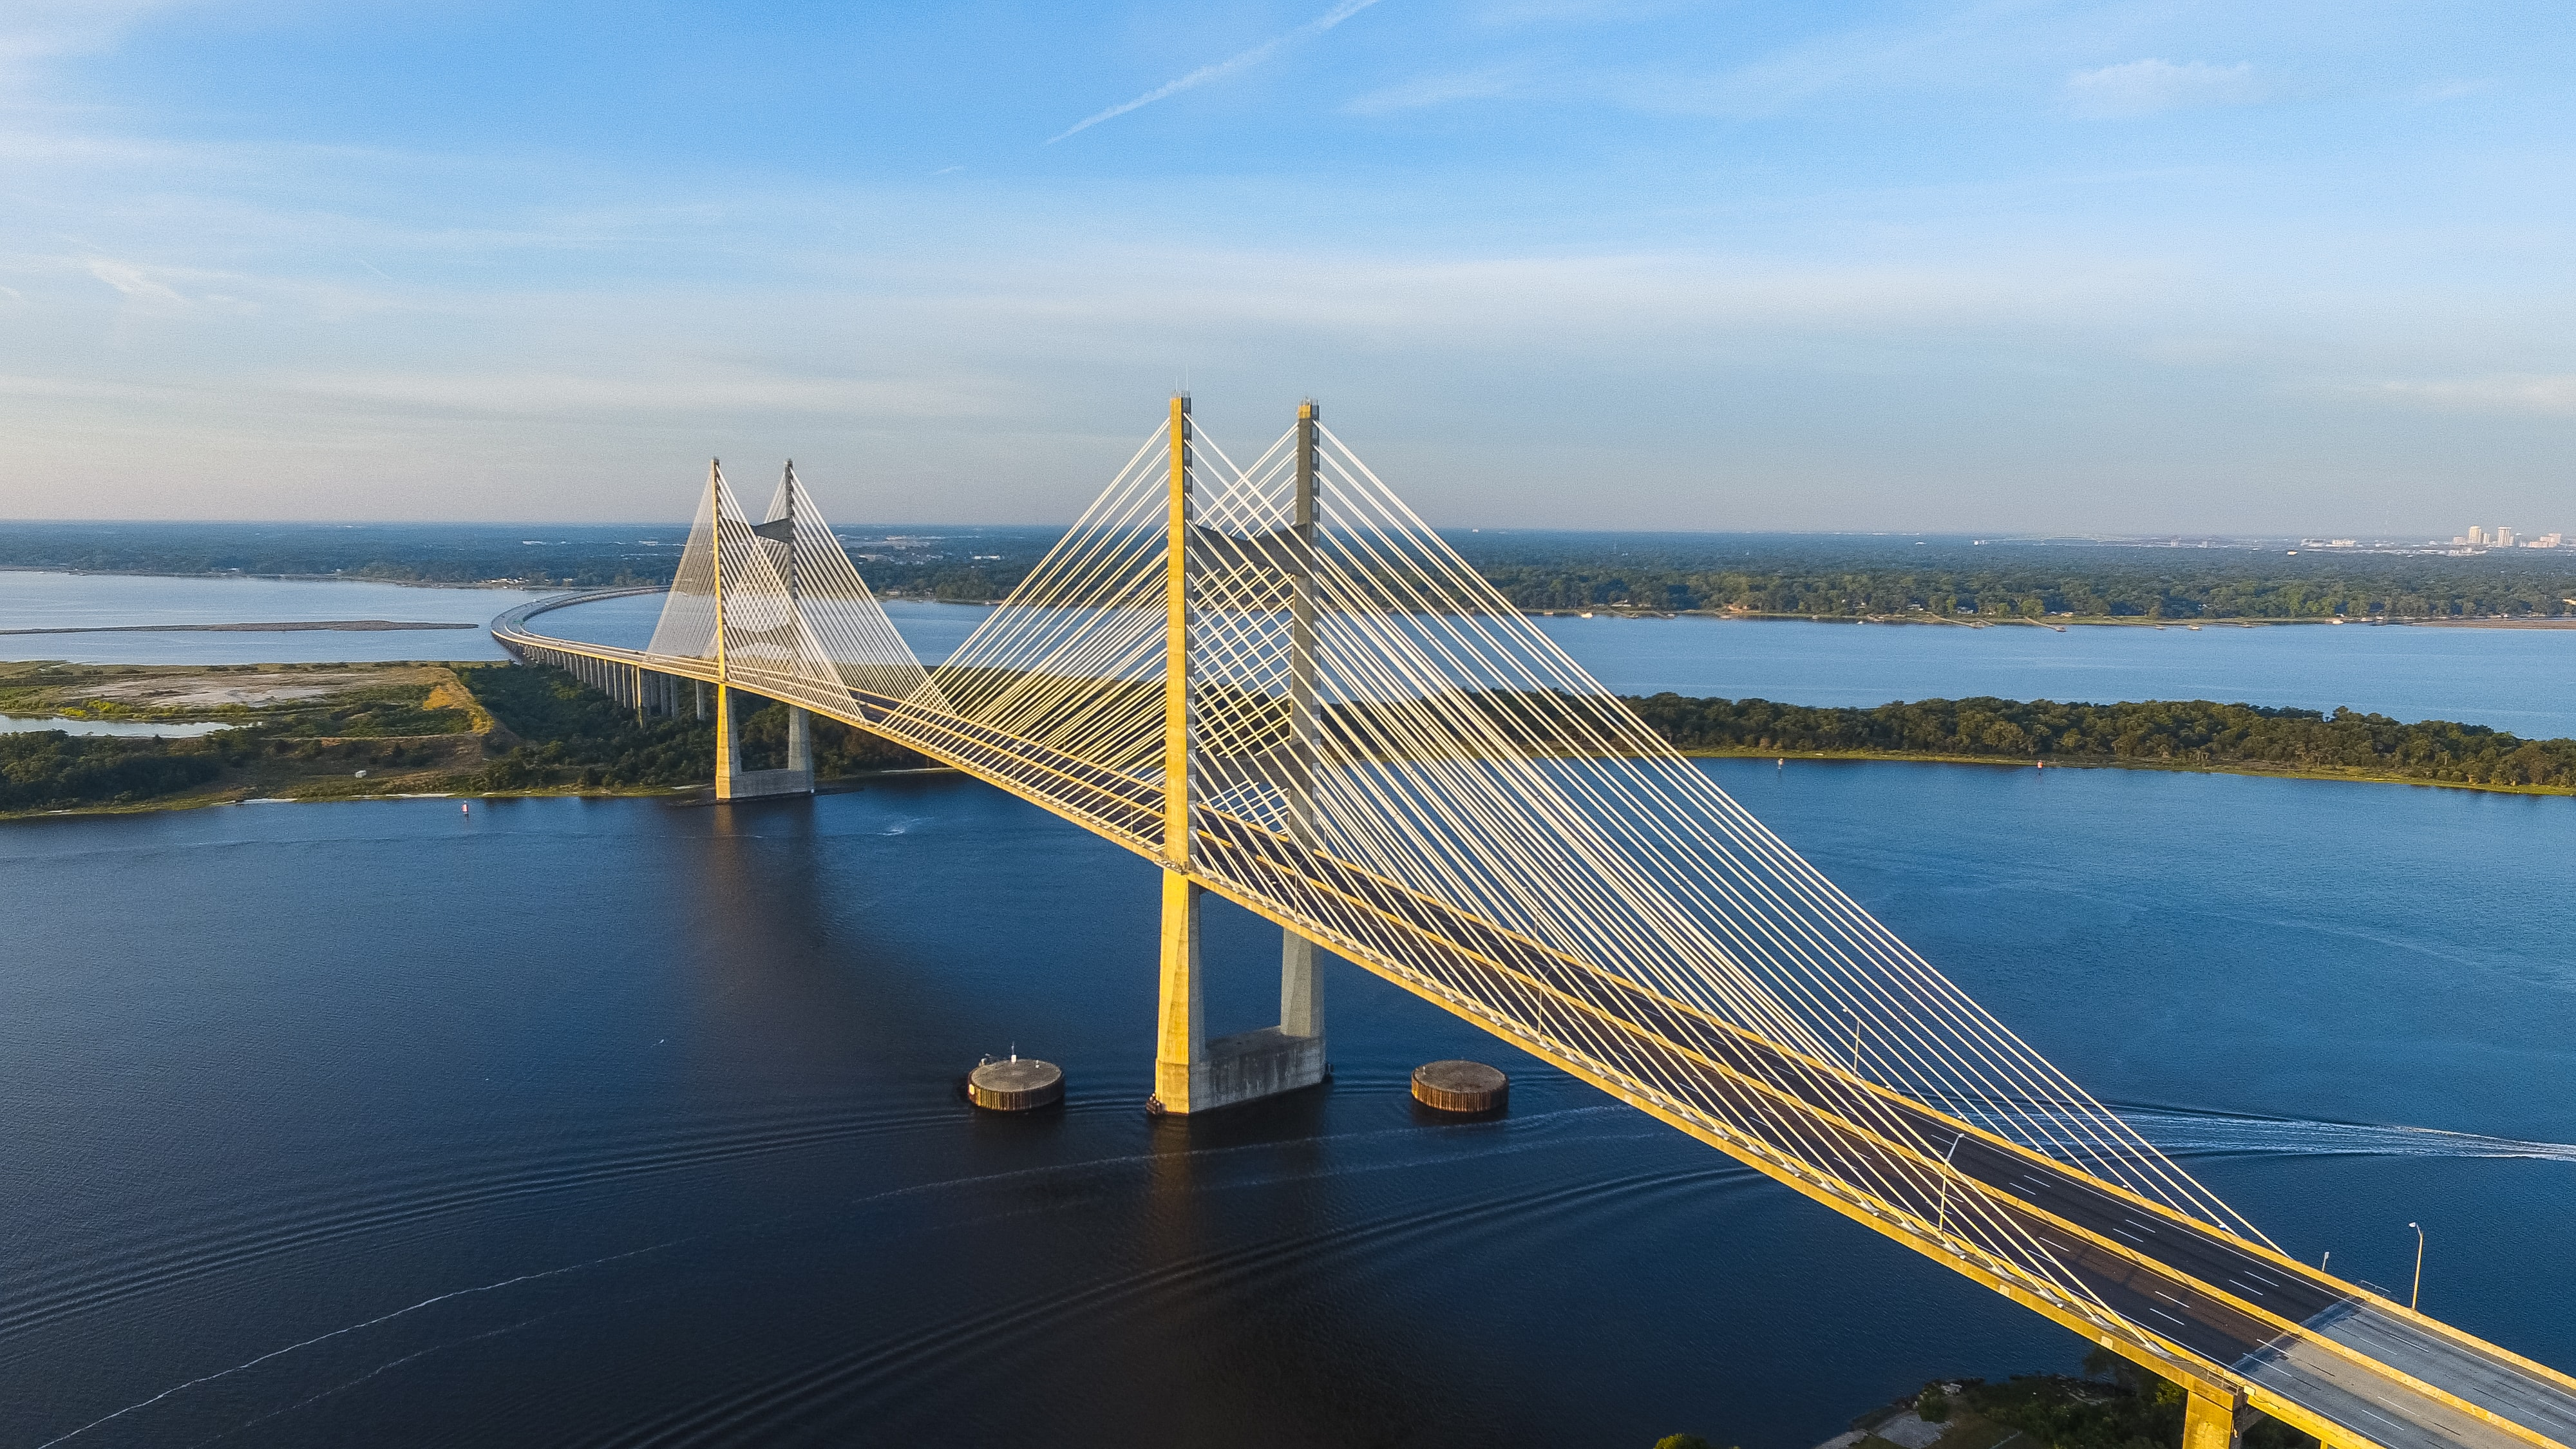 aerial photography of yellow bridge surrounded by body of water